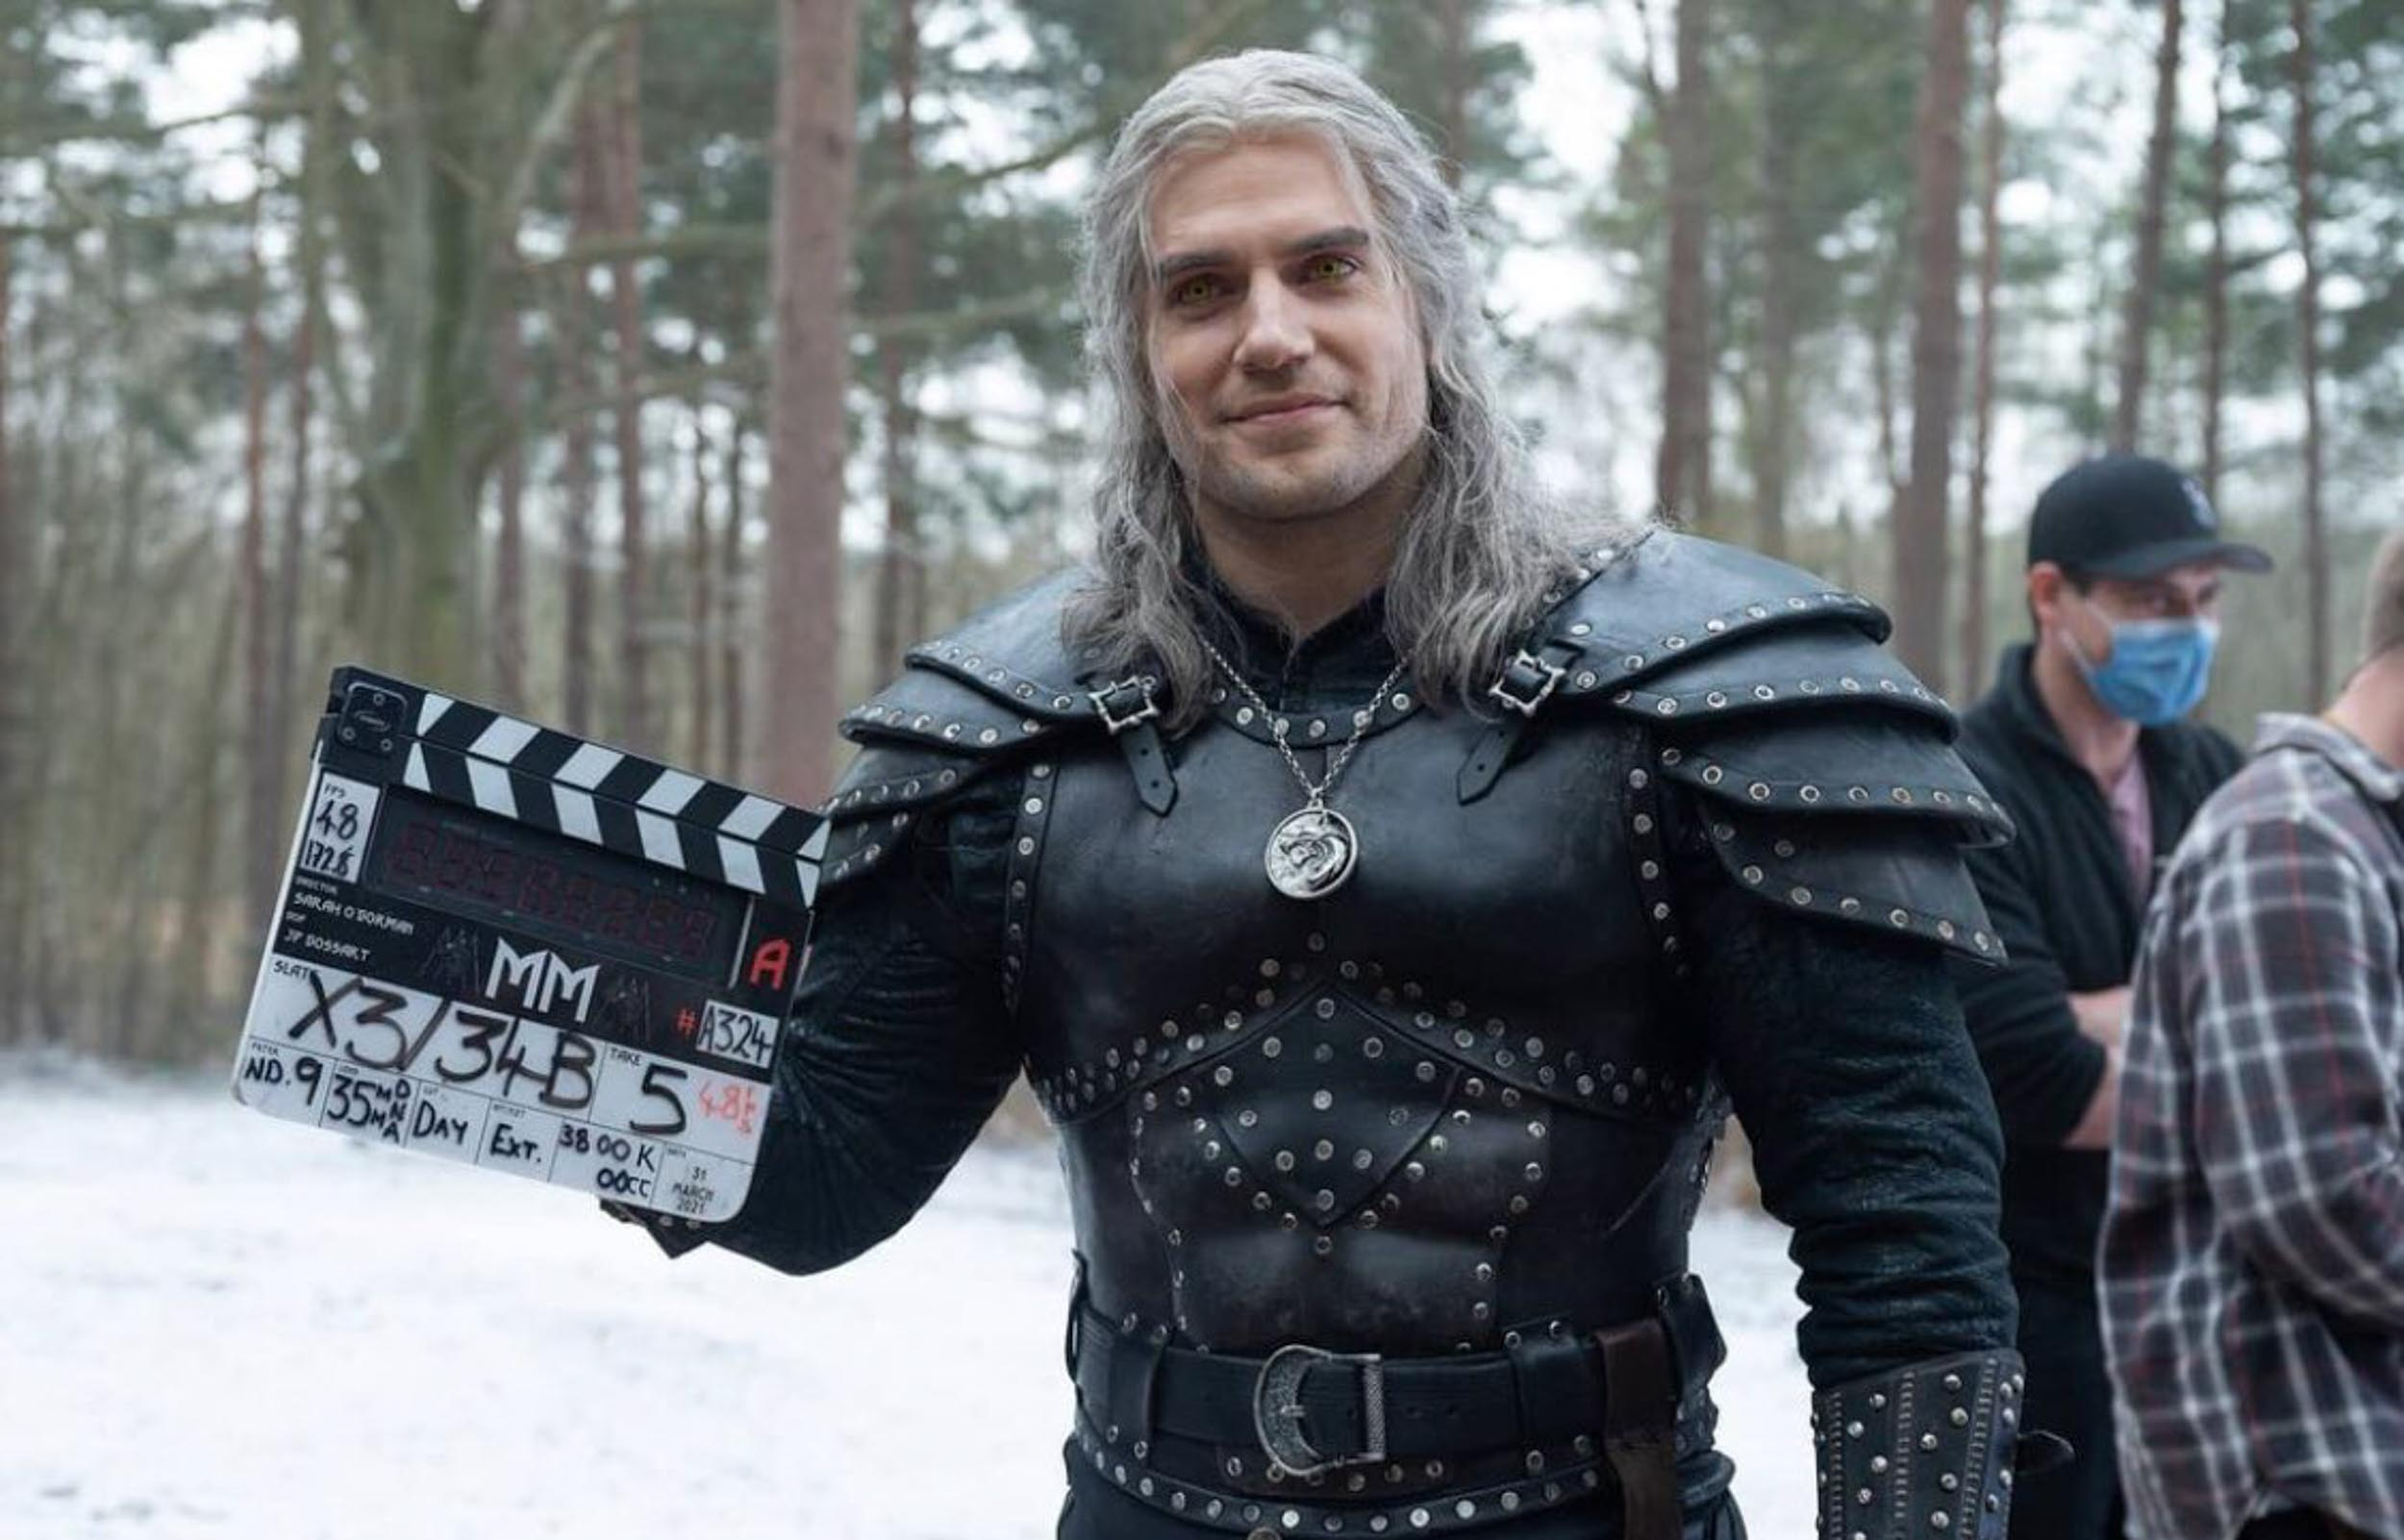 The Witcher | Season 2 Production Wrap: Behind The Scenes